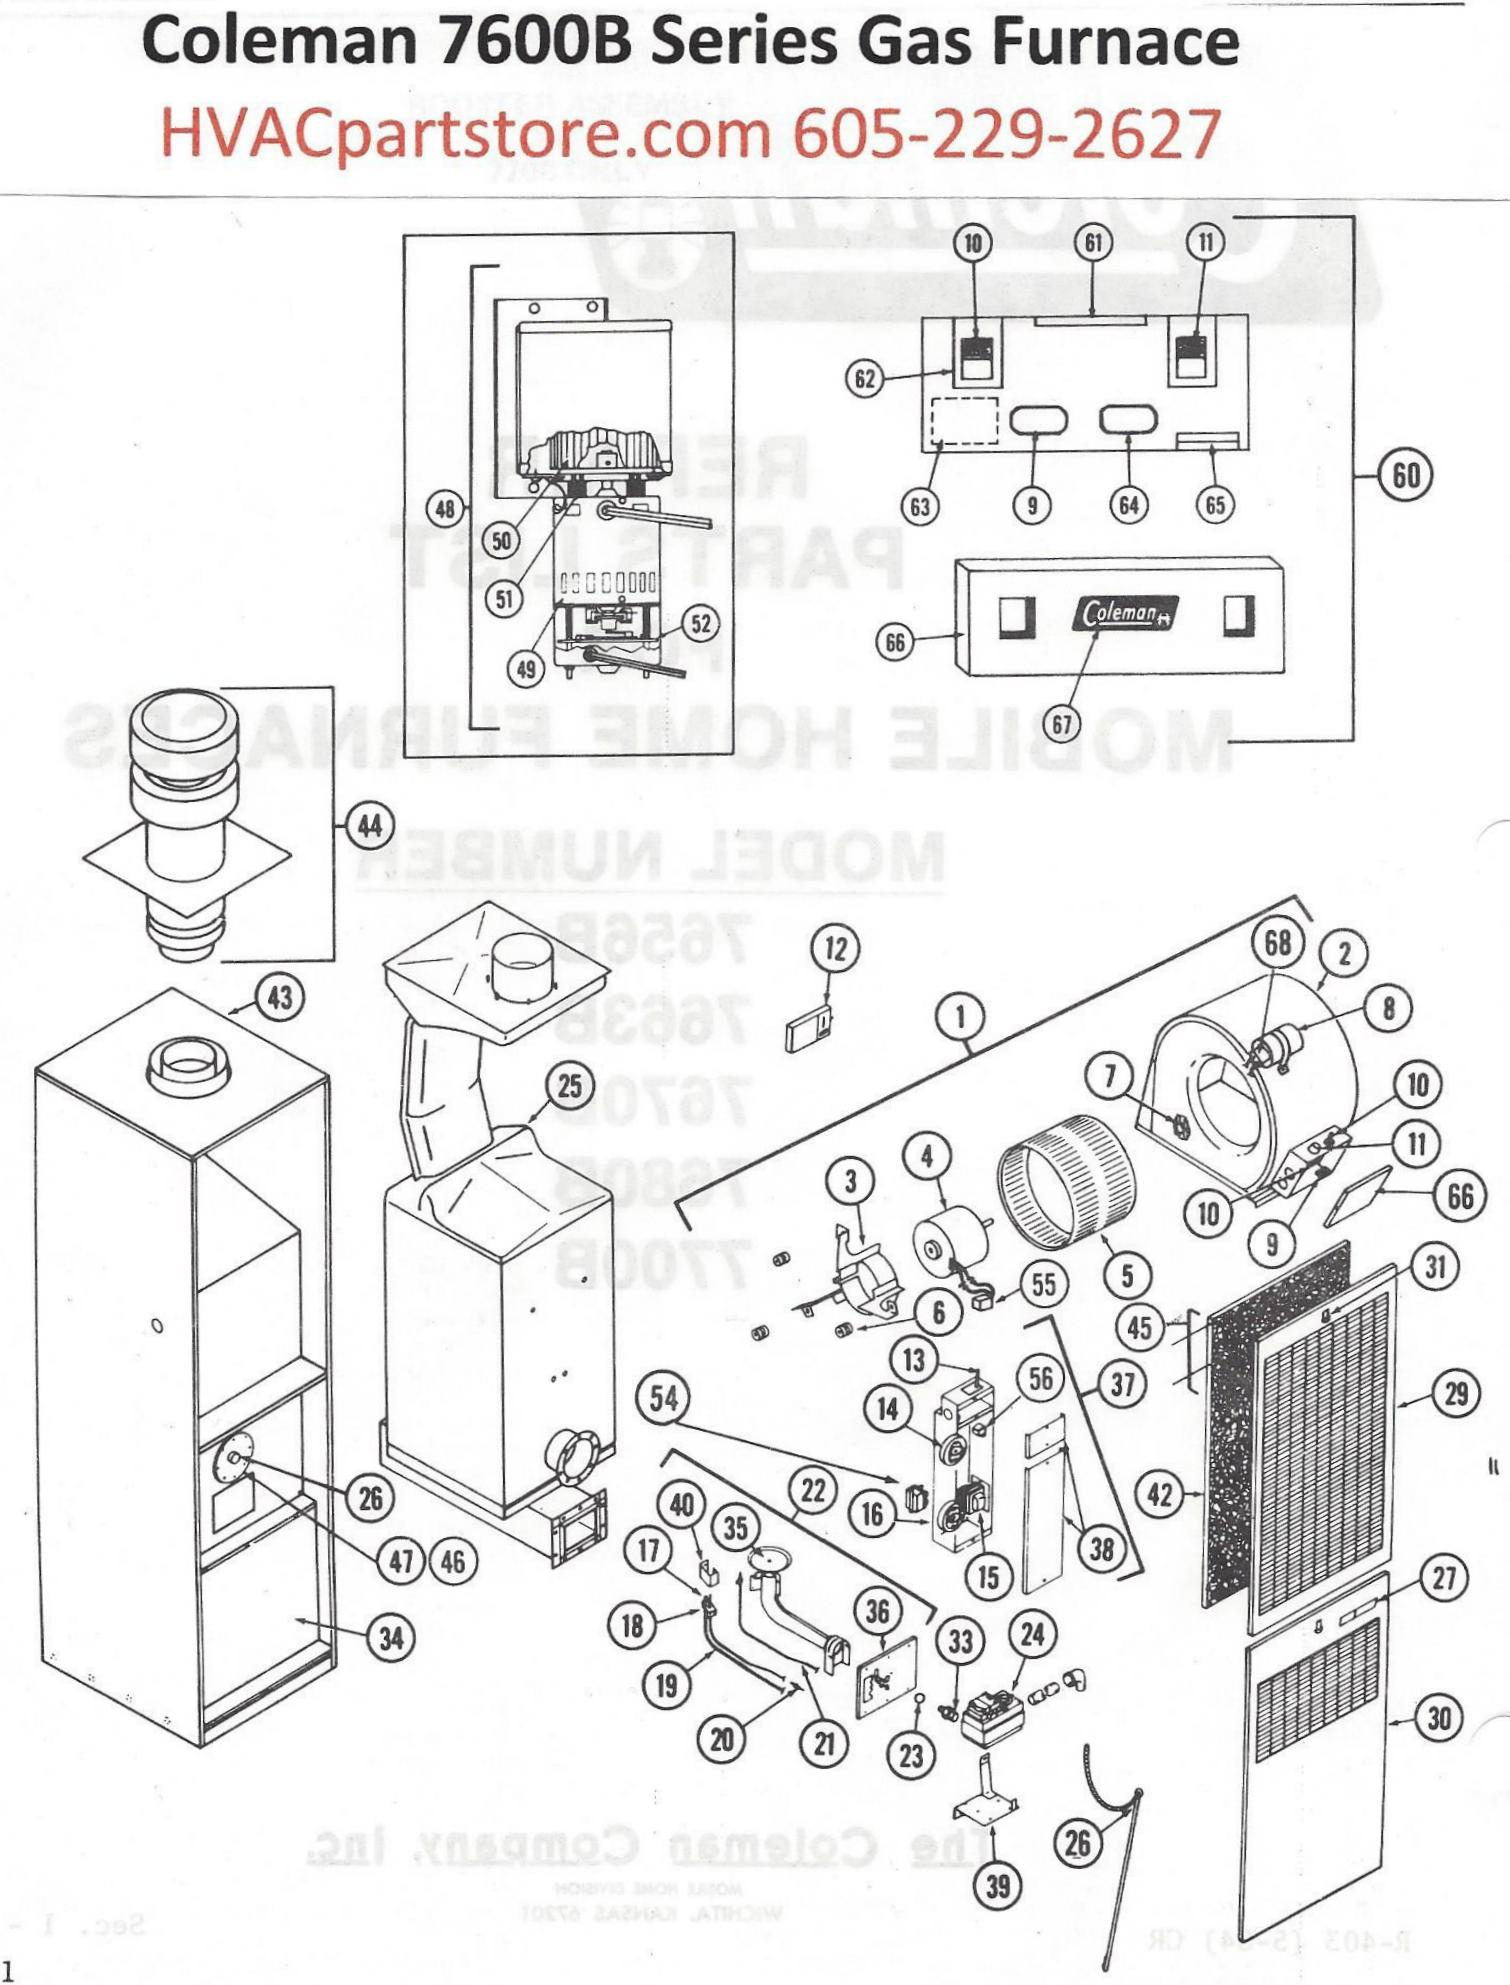 7656b856 coleman gas furnace parts hvacpartstore click here to view a manual for the coleman 7656b856 which includes wiring diagrams asfbconference2016 Image collections